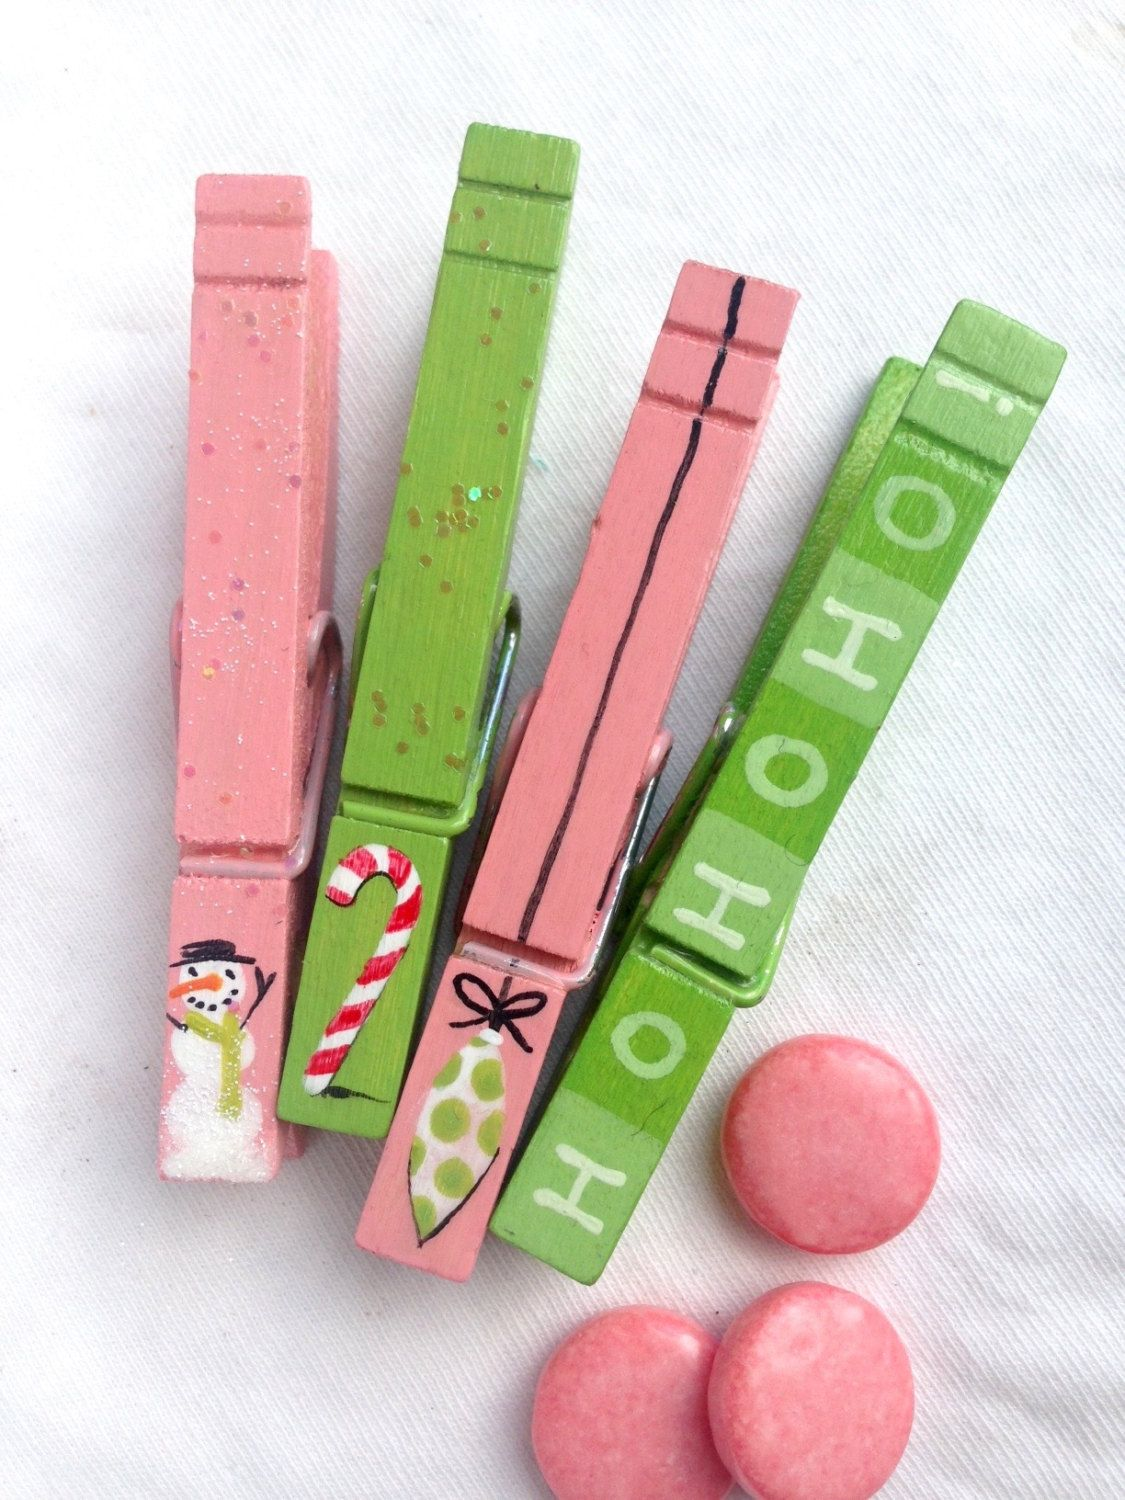 CHRISTMAS CLOTHESPINS pink and green hand painted snowman candy cane ornament ho ho ho magnet by SugarAndPaint on Etsy